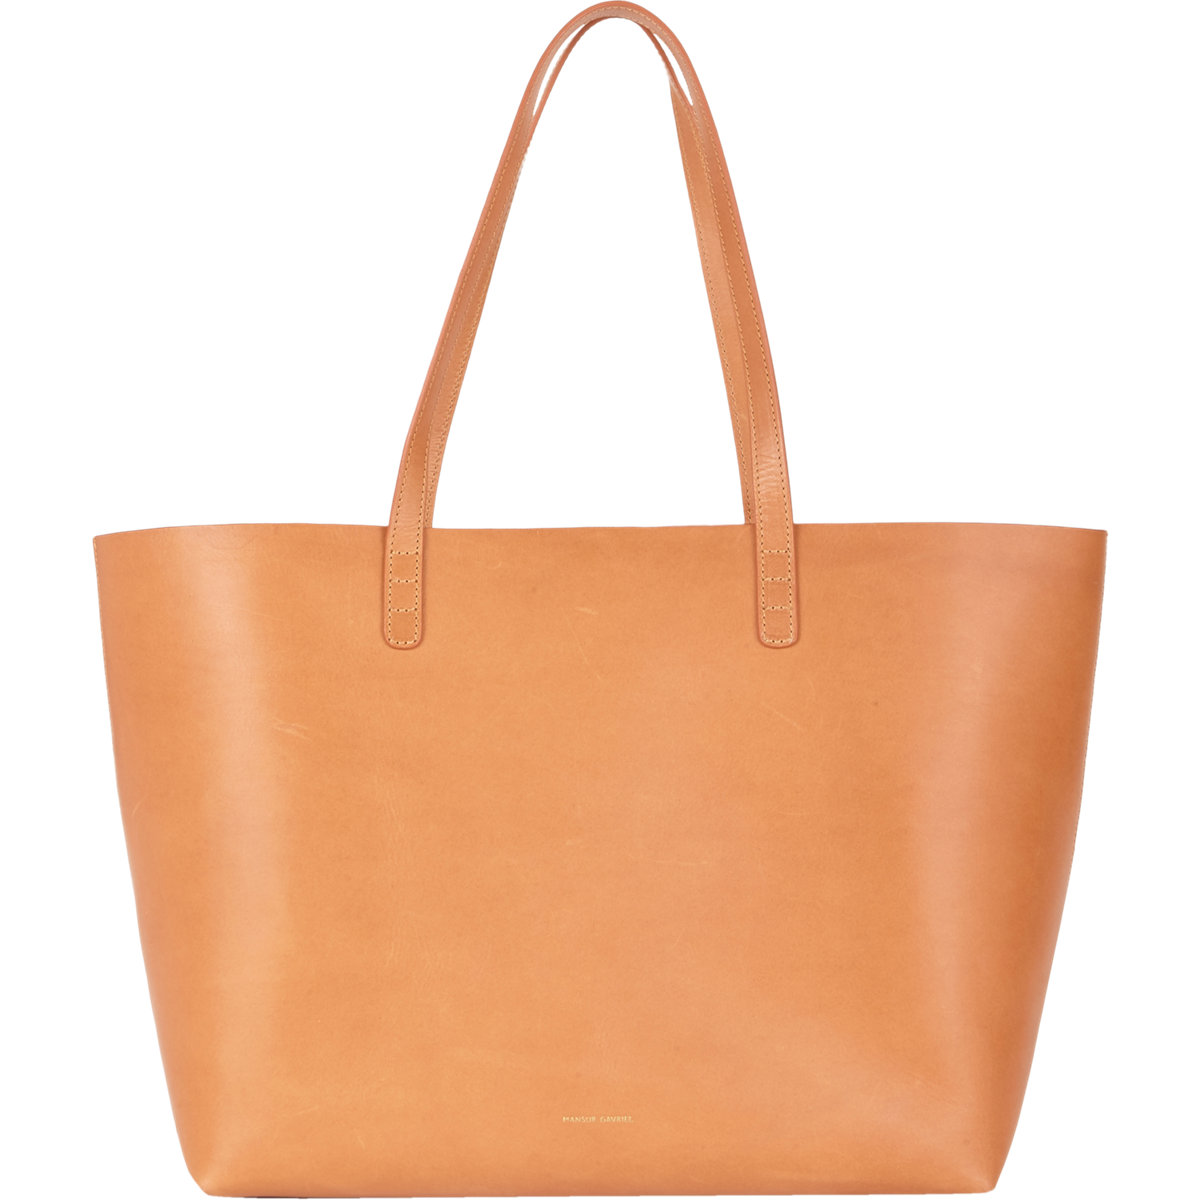 Mansur Gavriel Large Tote at Barneys.com